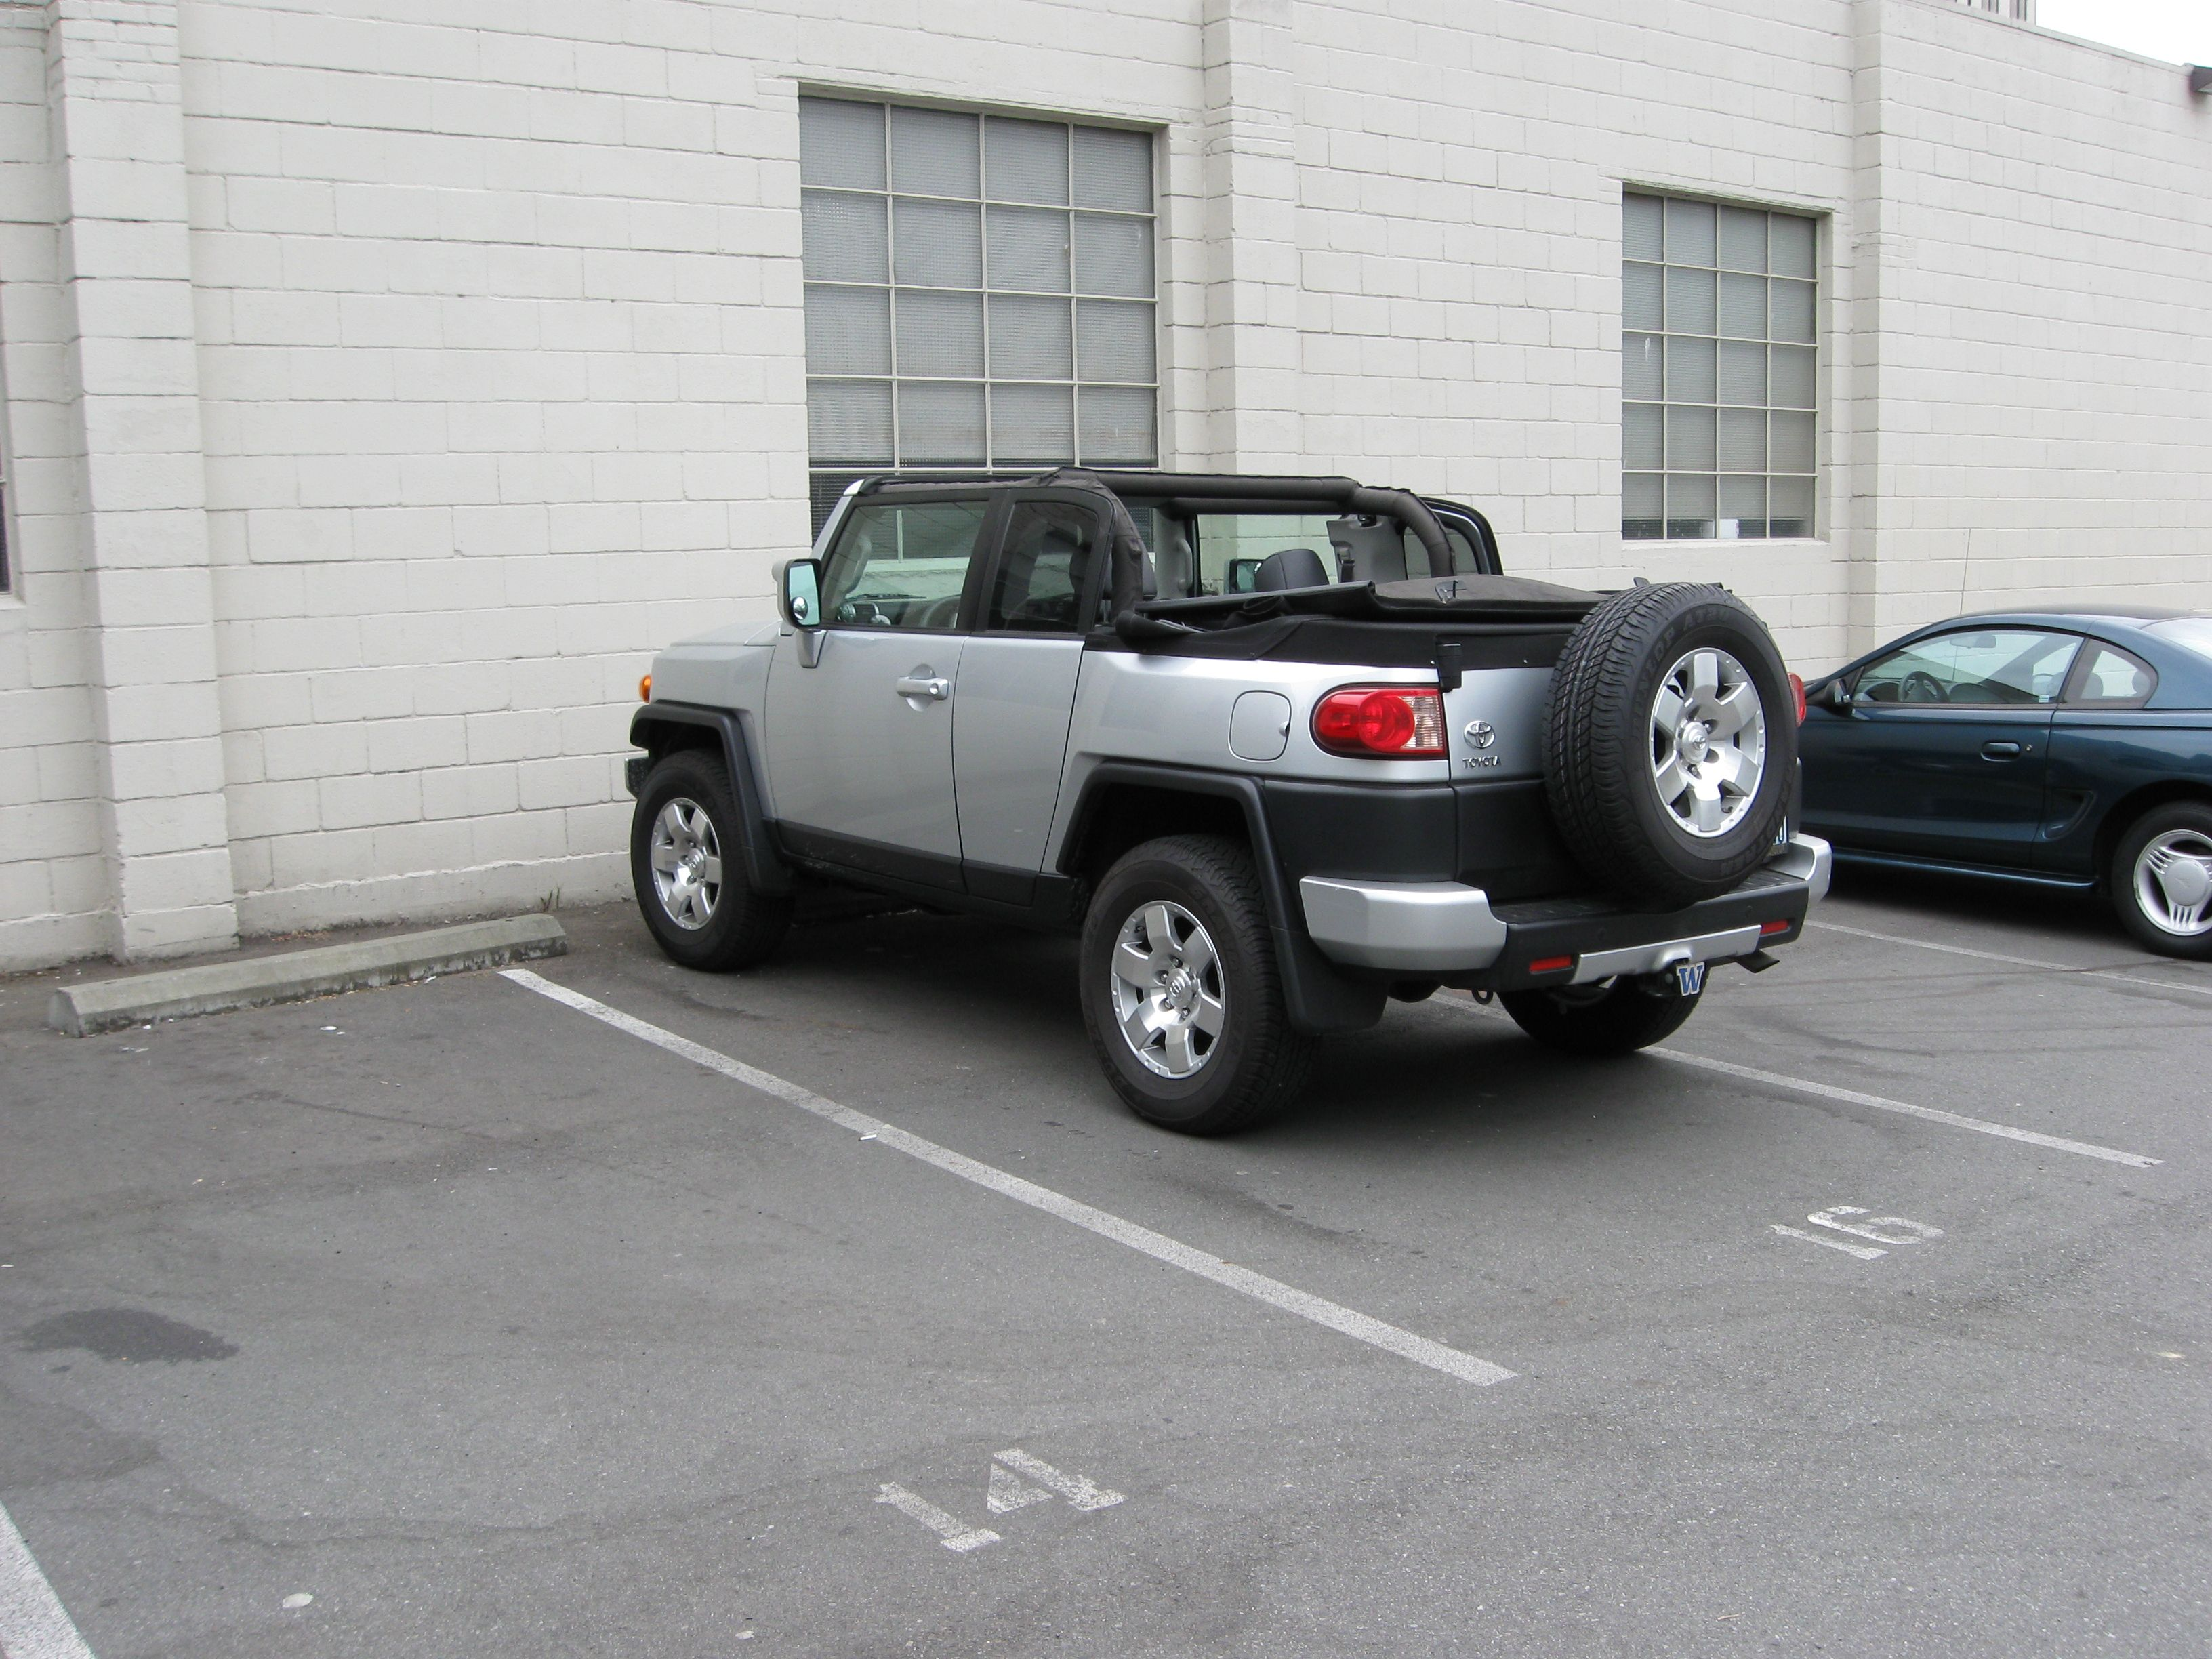 Fj Cruiser Convertible Conversion Very Nice Fj Cruiser Toyota